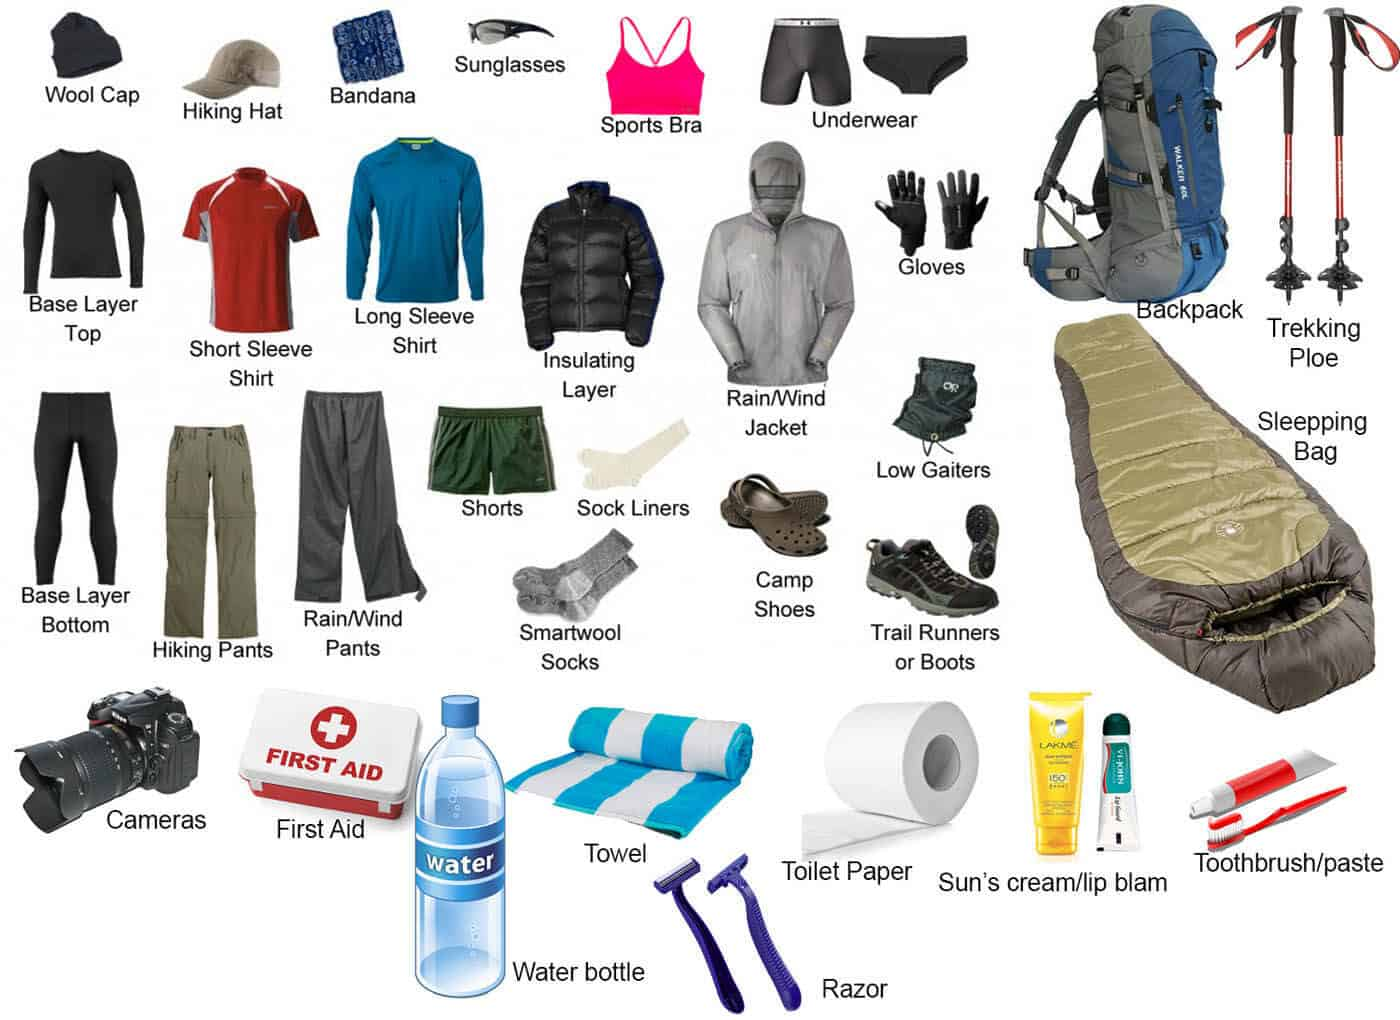 Suggested Equipment for Trekking in Nepal